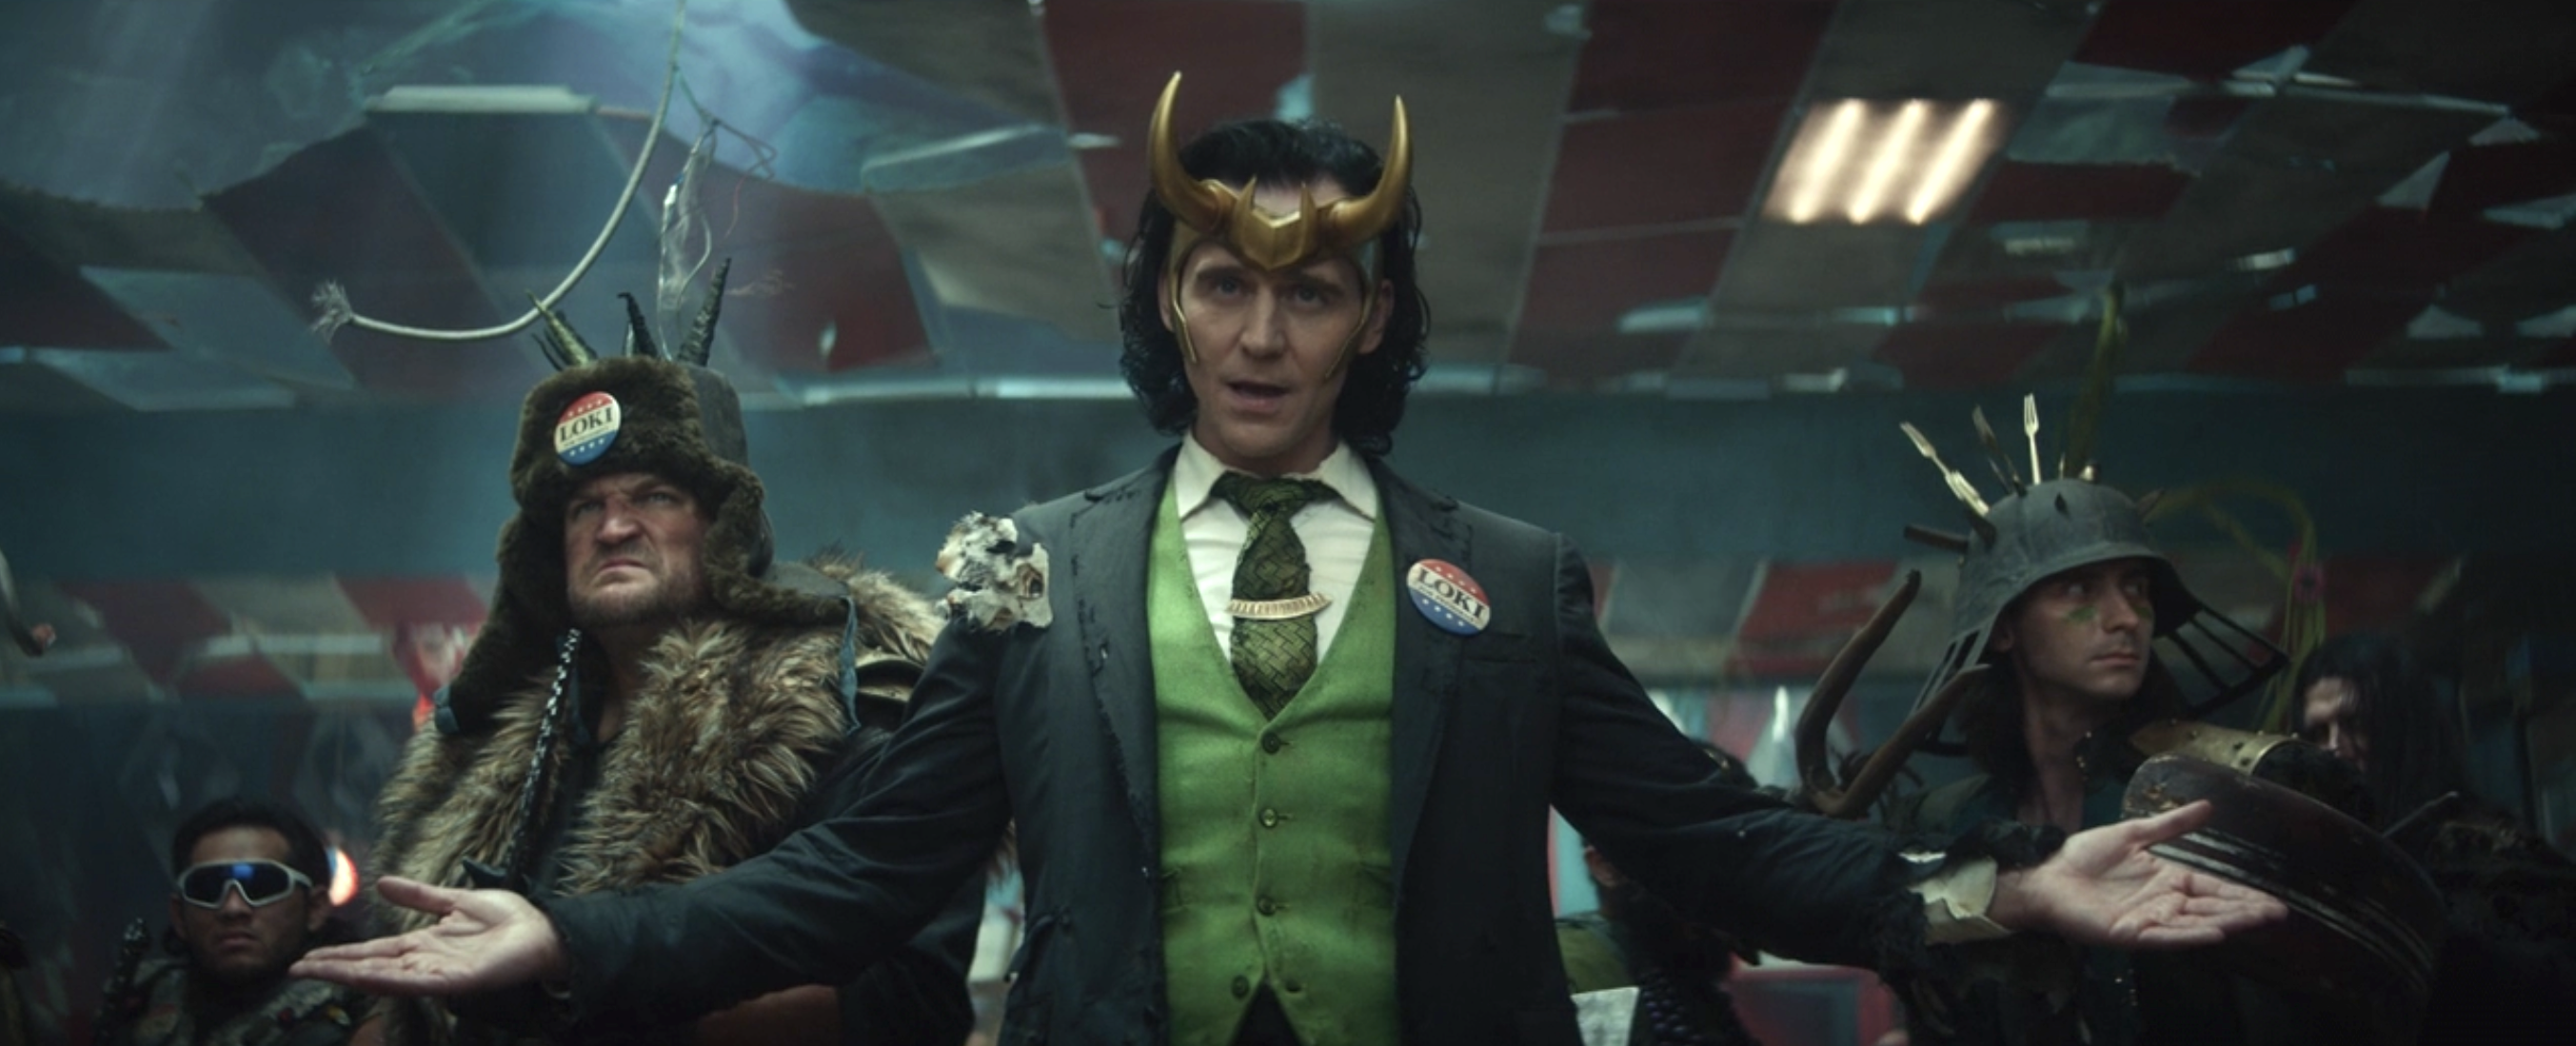 President Loki spreads his arms in front of his squad of Variant Lokis in Loki.